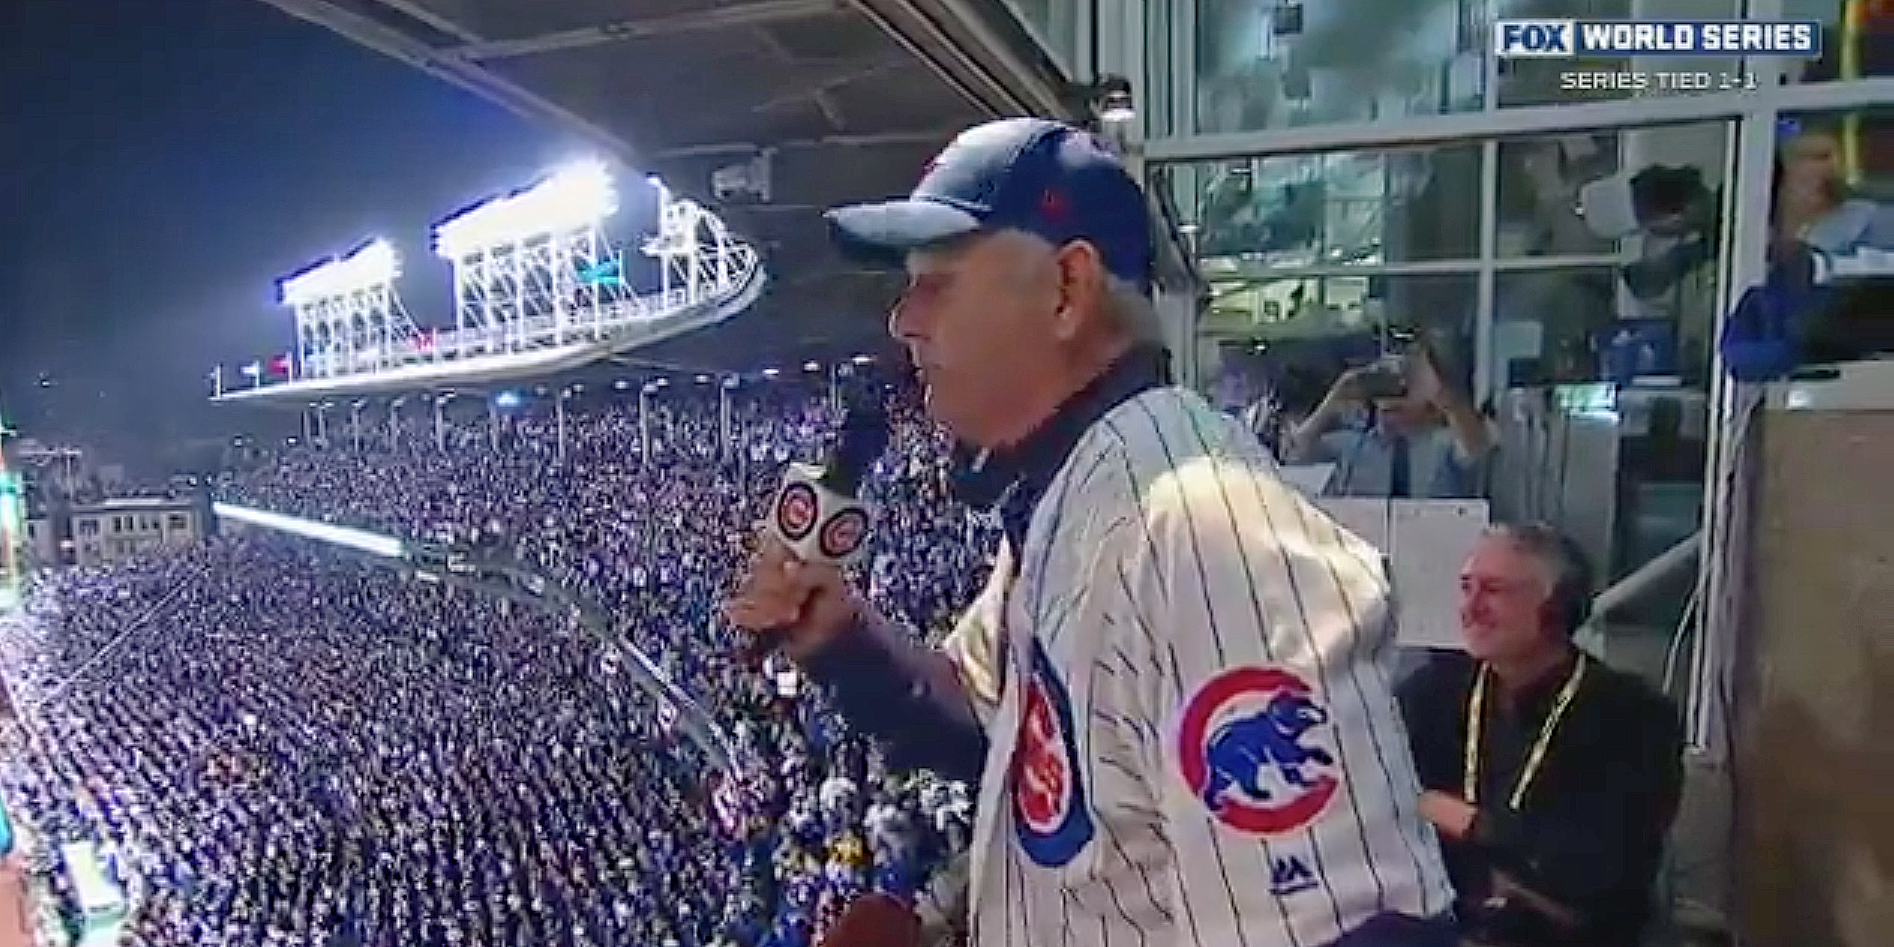 Watch Bill Murray's one-of-a-kind rendition of 'Take Me Out To The Ballgame' at Wrigley Field